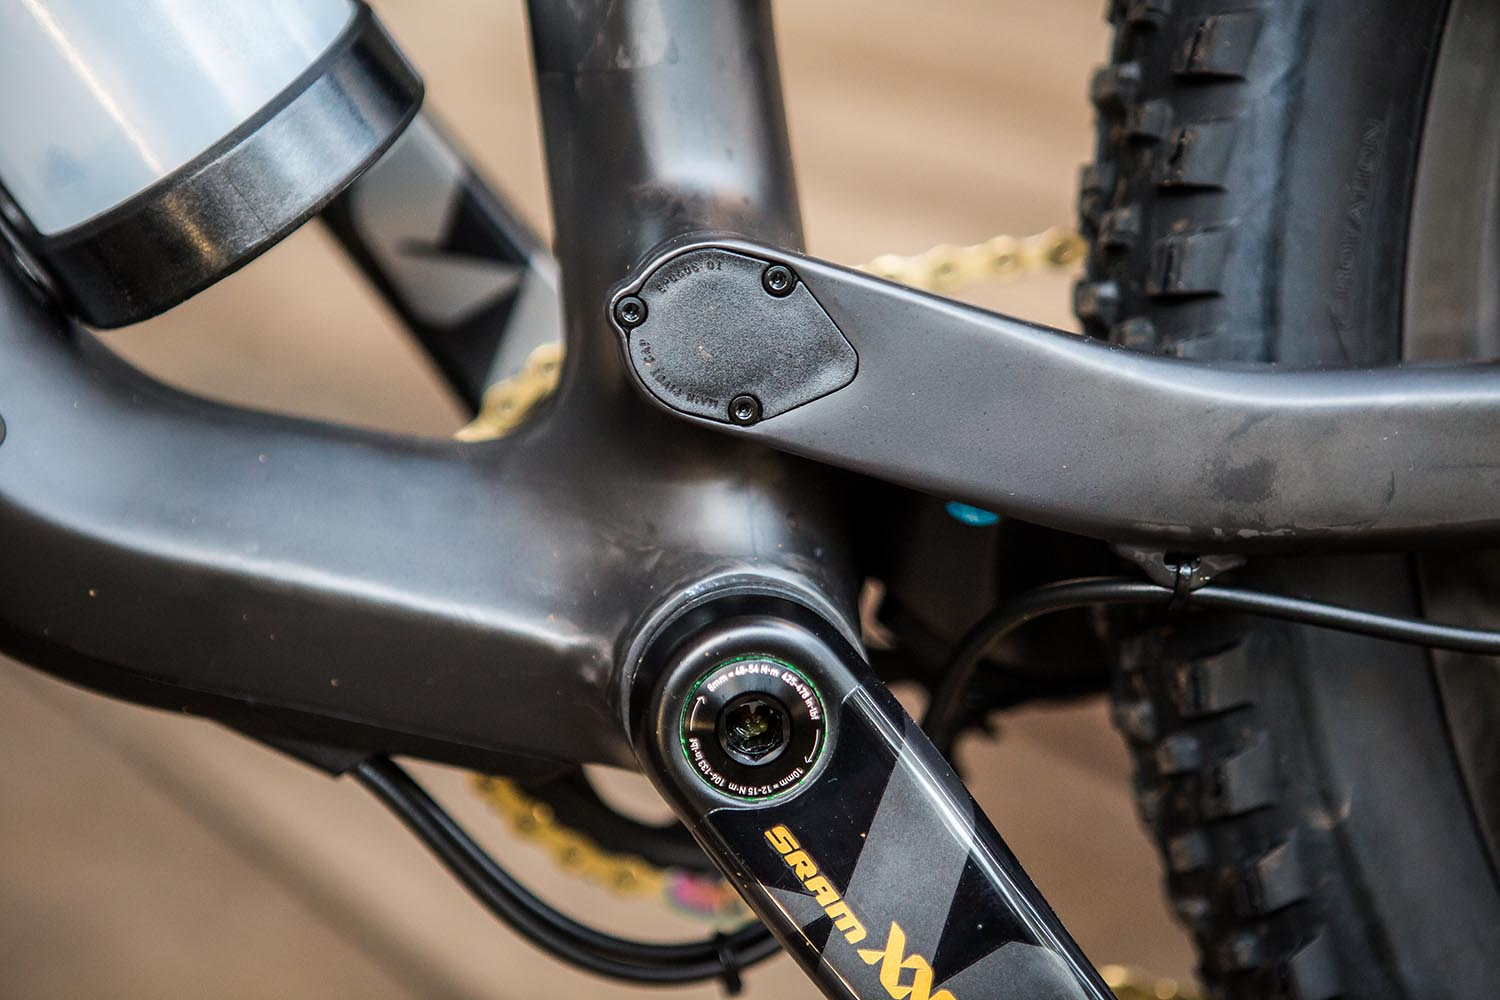 Belt & braces - The fully sealed pivot bearings are further protected by the bolt on cap